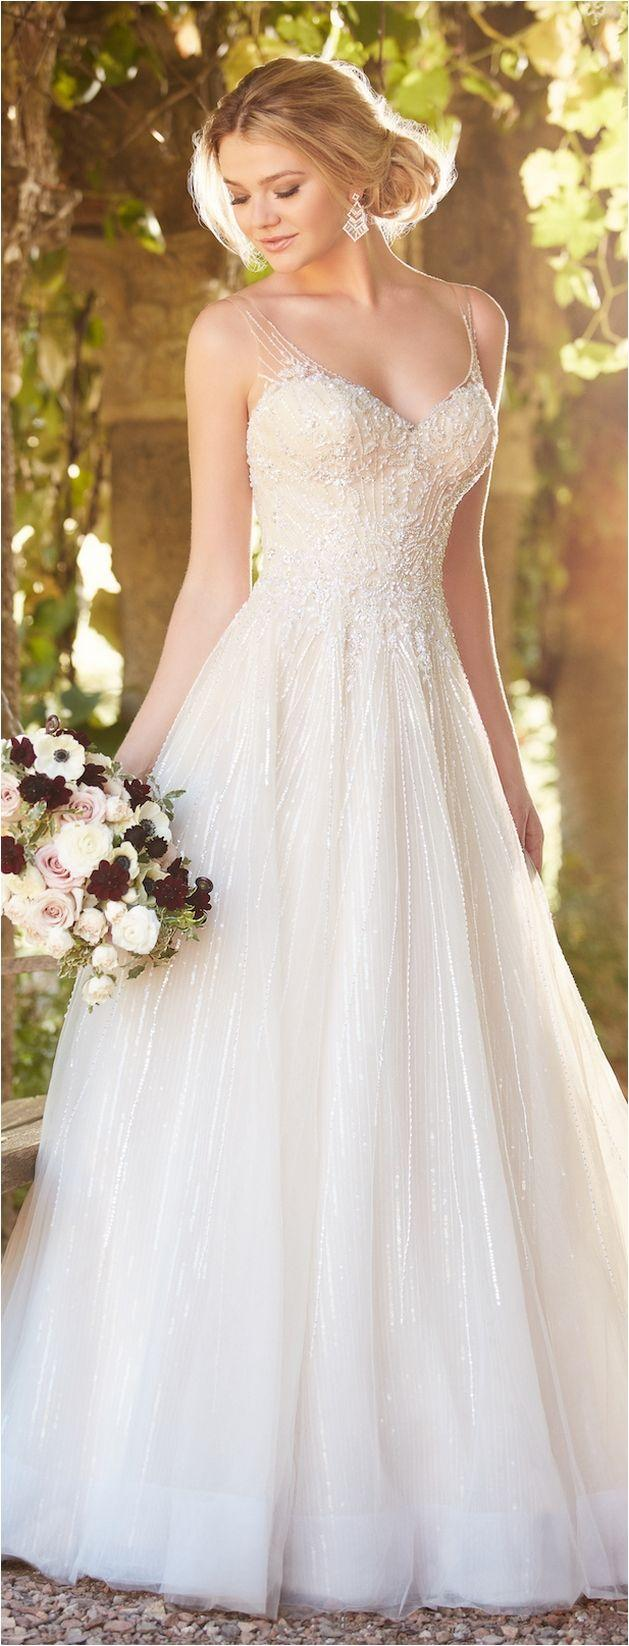 Wedding - 139 New Spring Summer 2017 Wedding Dresses Trends And Ideas